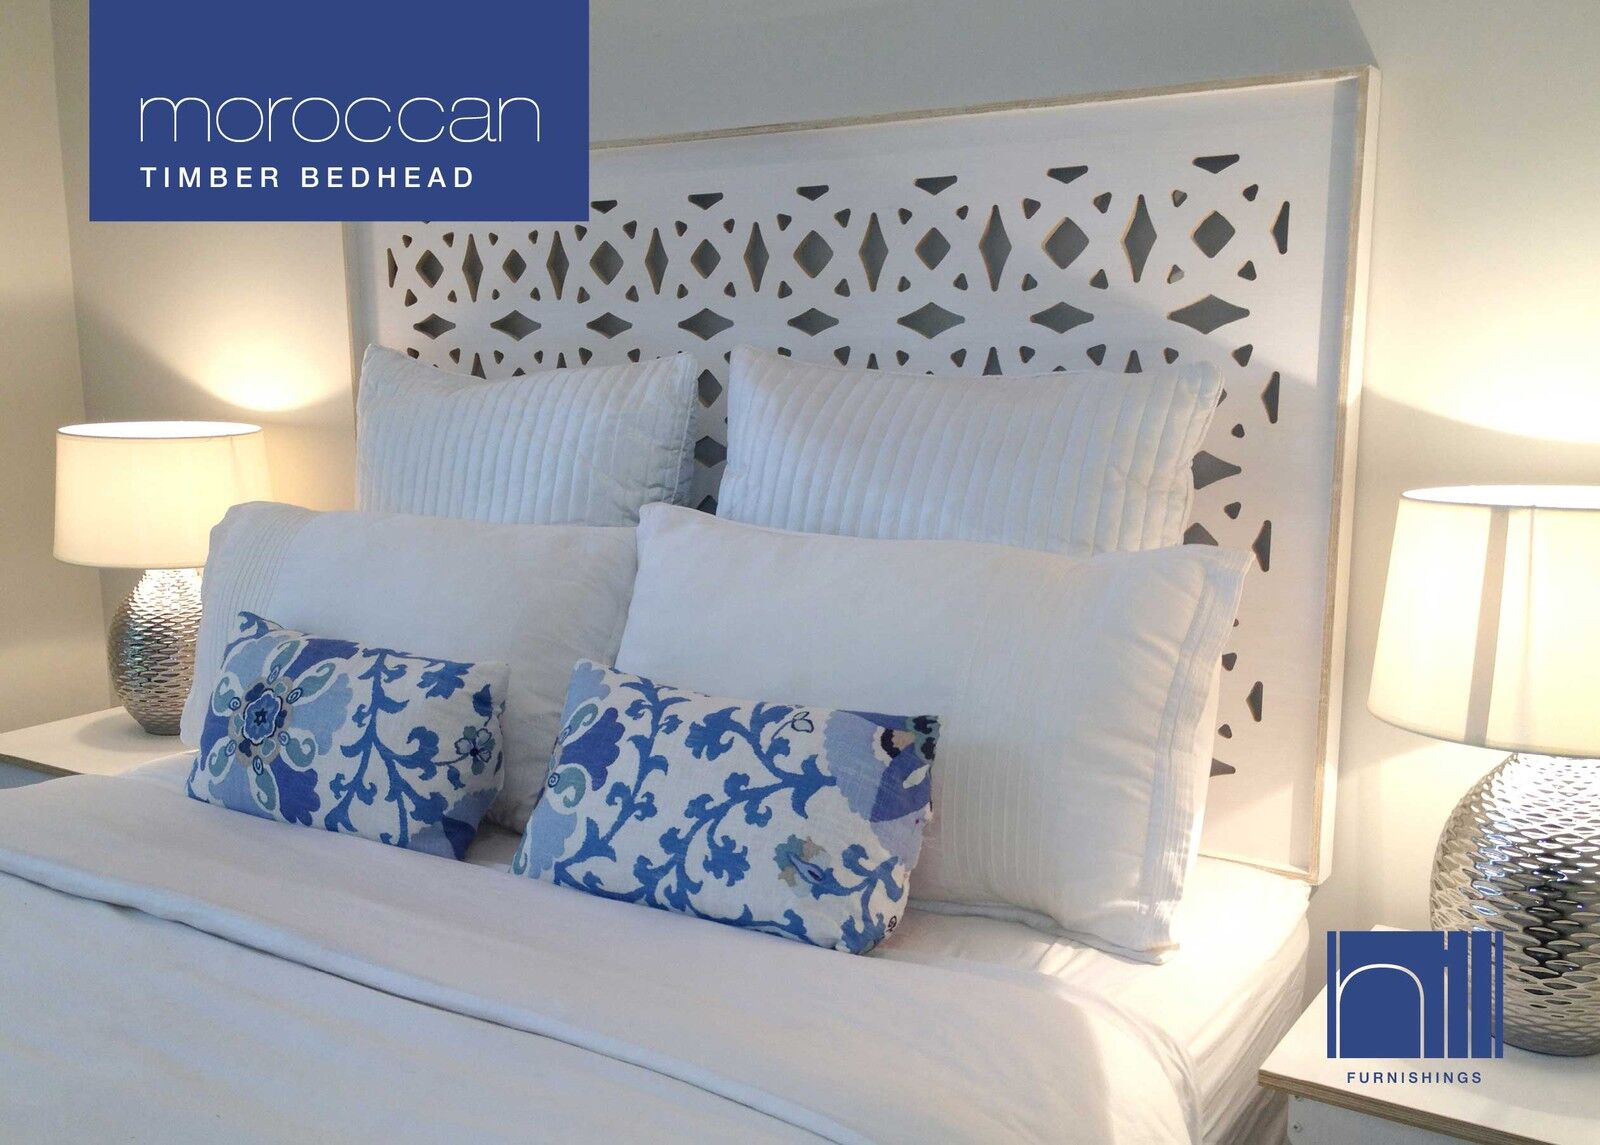 Headboard For Ensemble Moroccan Timber Bedhead Headboard For Double Ensemble